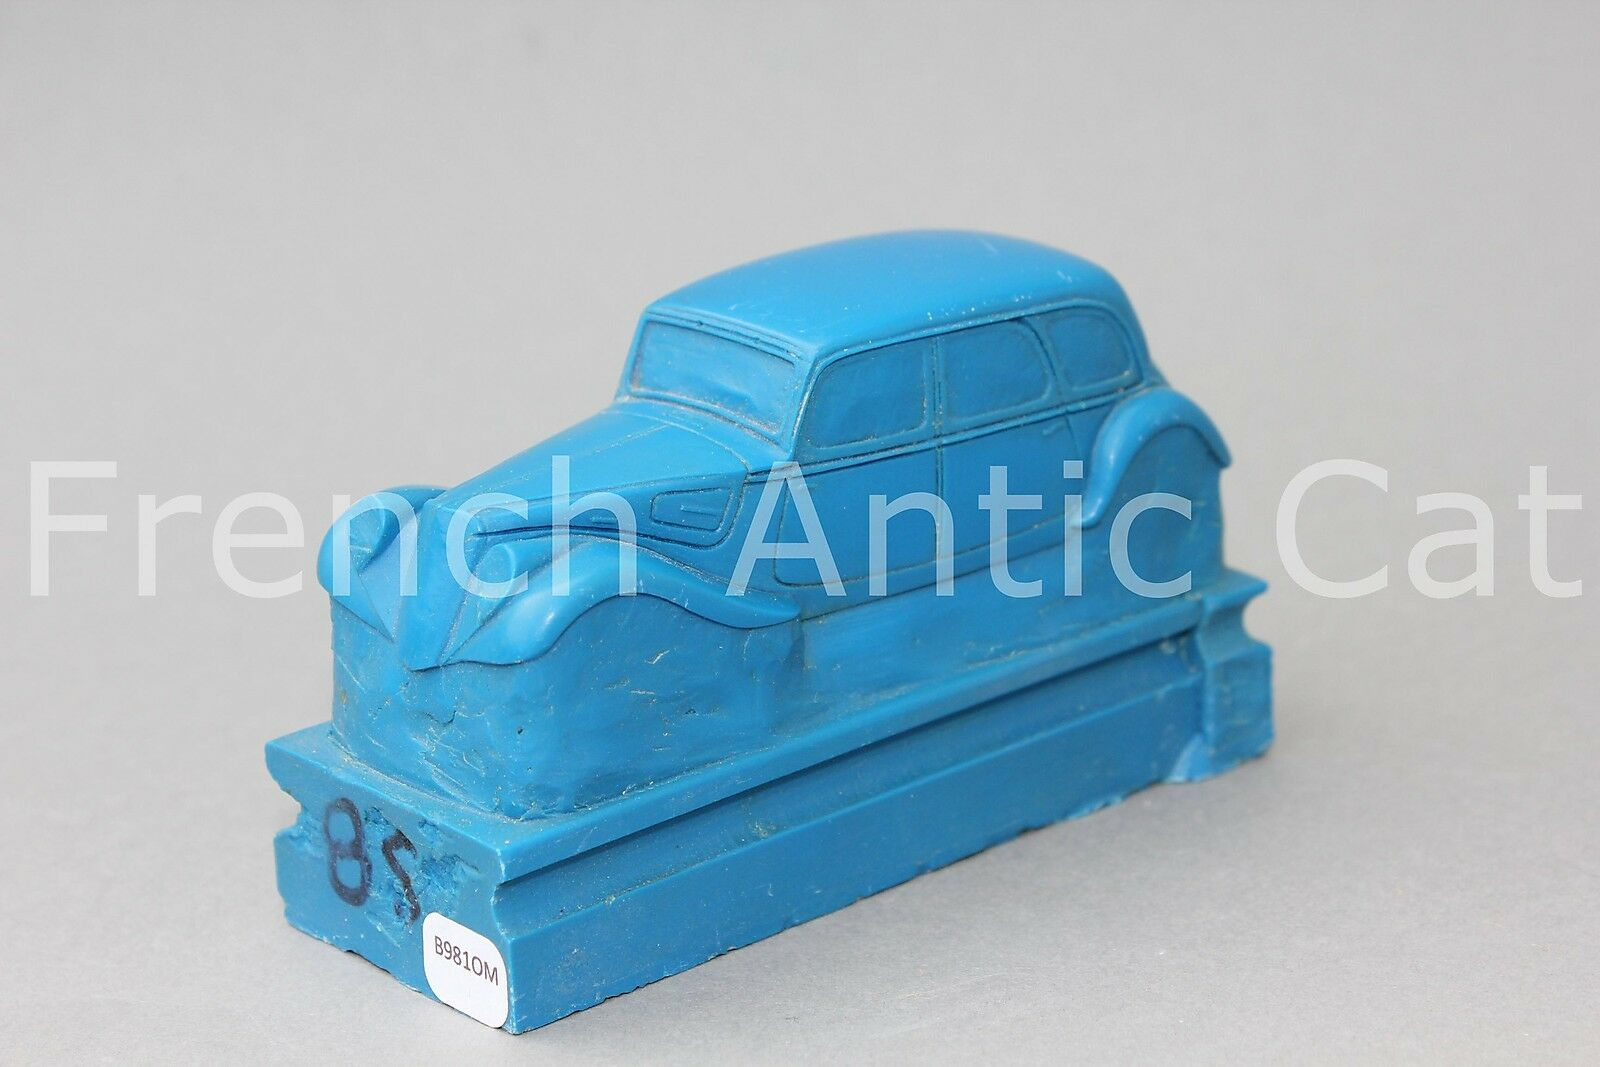 Raro Modelo Matrix Resina Citroen Traction 22 Cv Familiar 1 43 Heco Matrix Om